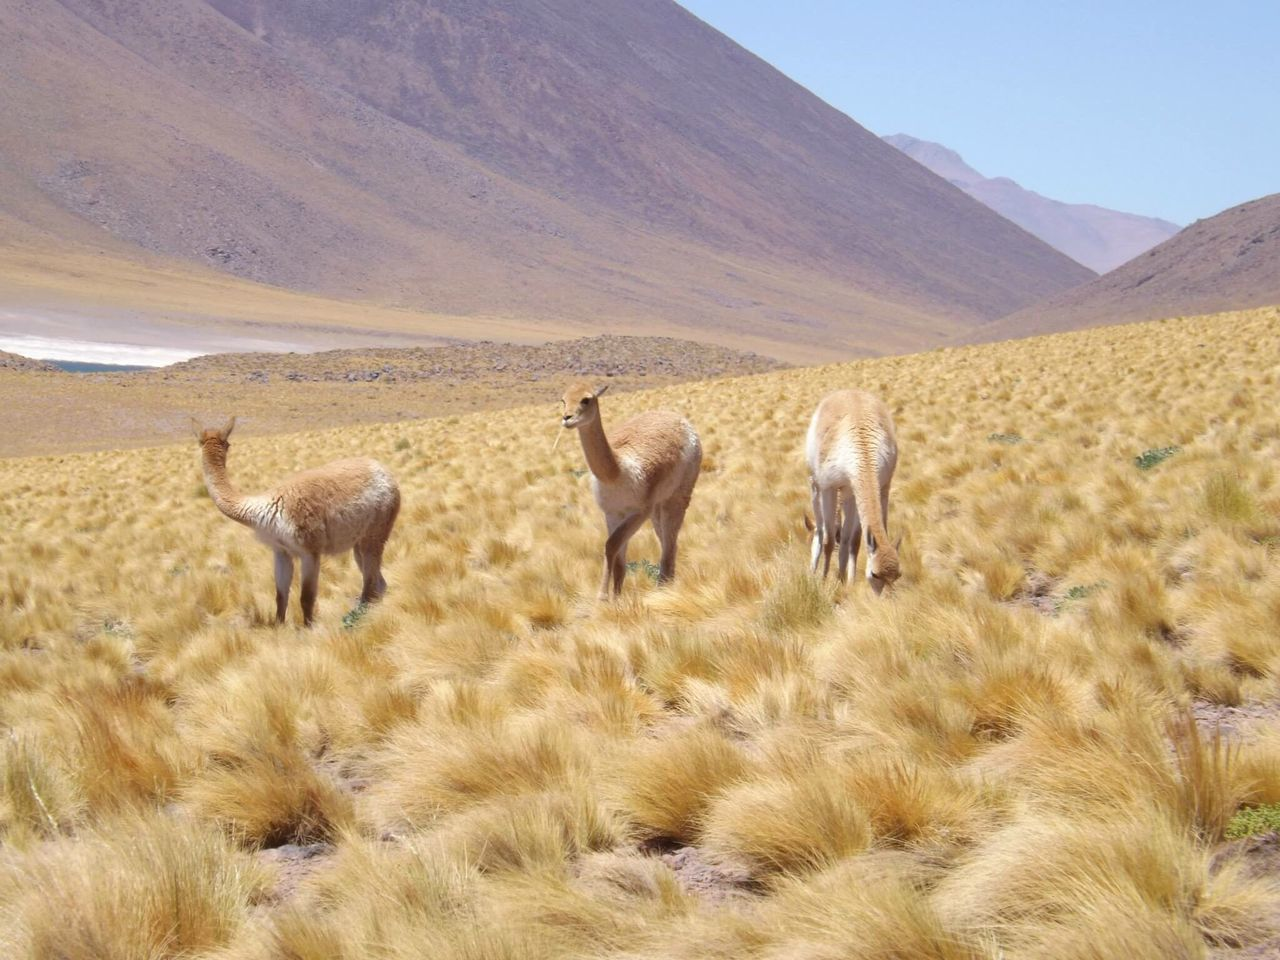 Lagunas altiplánicas, San Pedro de Atacama Traveling Nature Nature Photography Nature_collection Animals In The Wild Animals Animal Wildlife Travel Travel Destinations Travel Photography Chile Desierto Desierto De Atacama Mountain Yellow